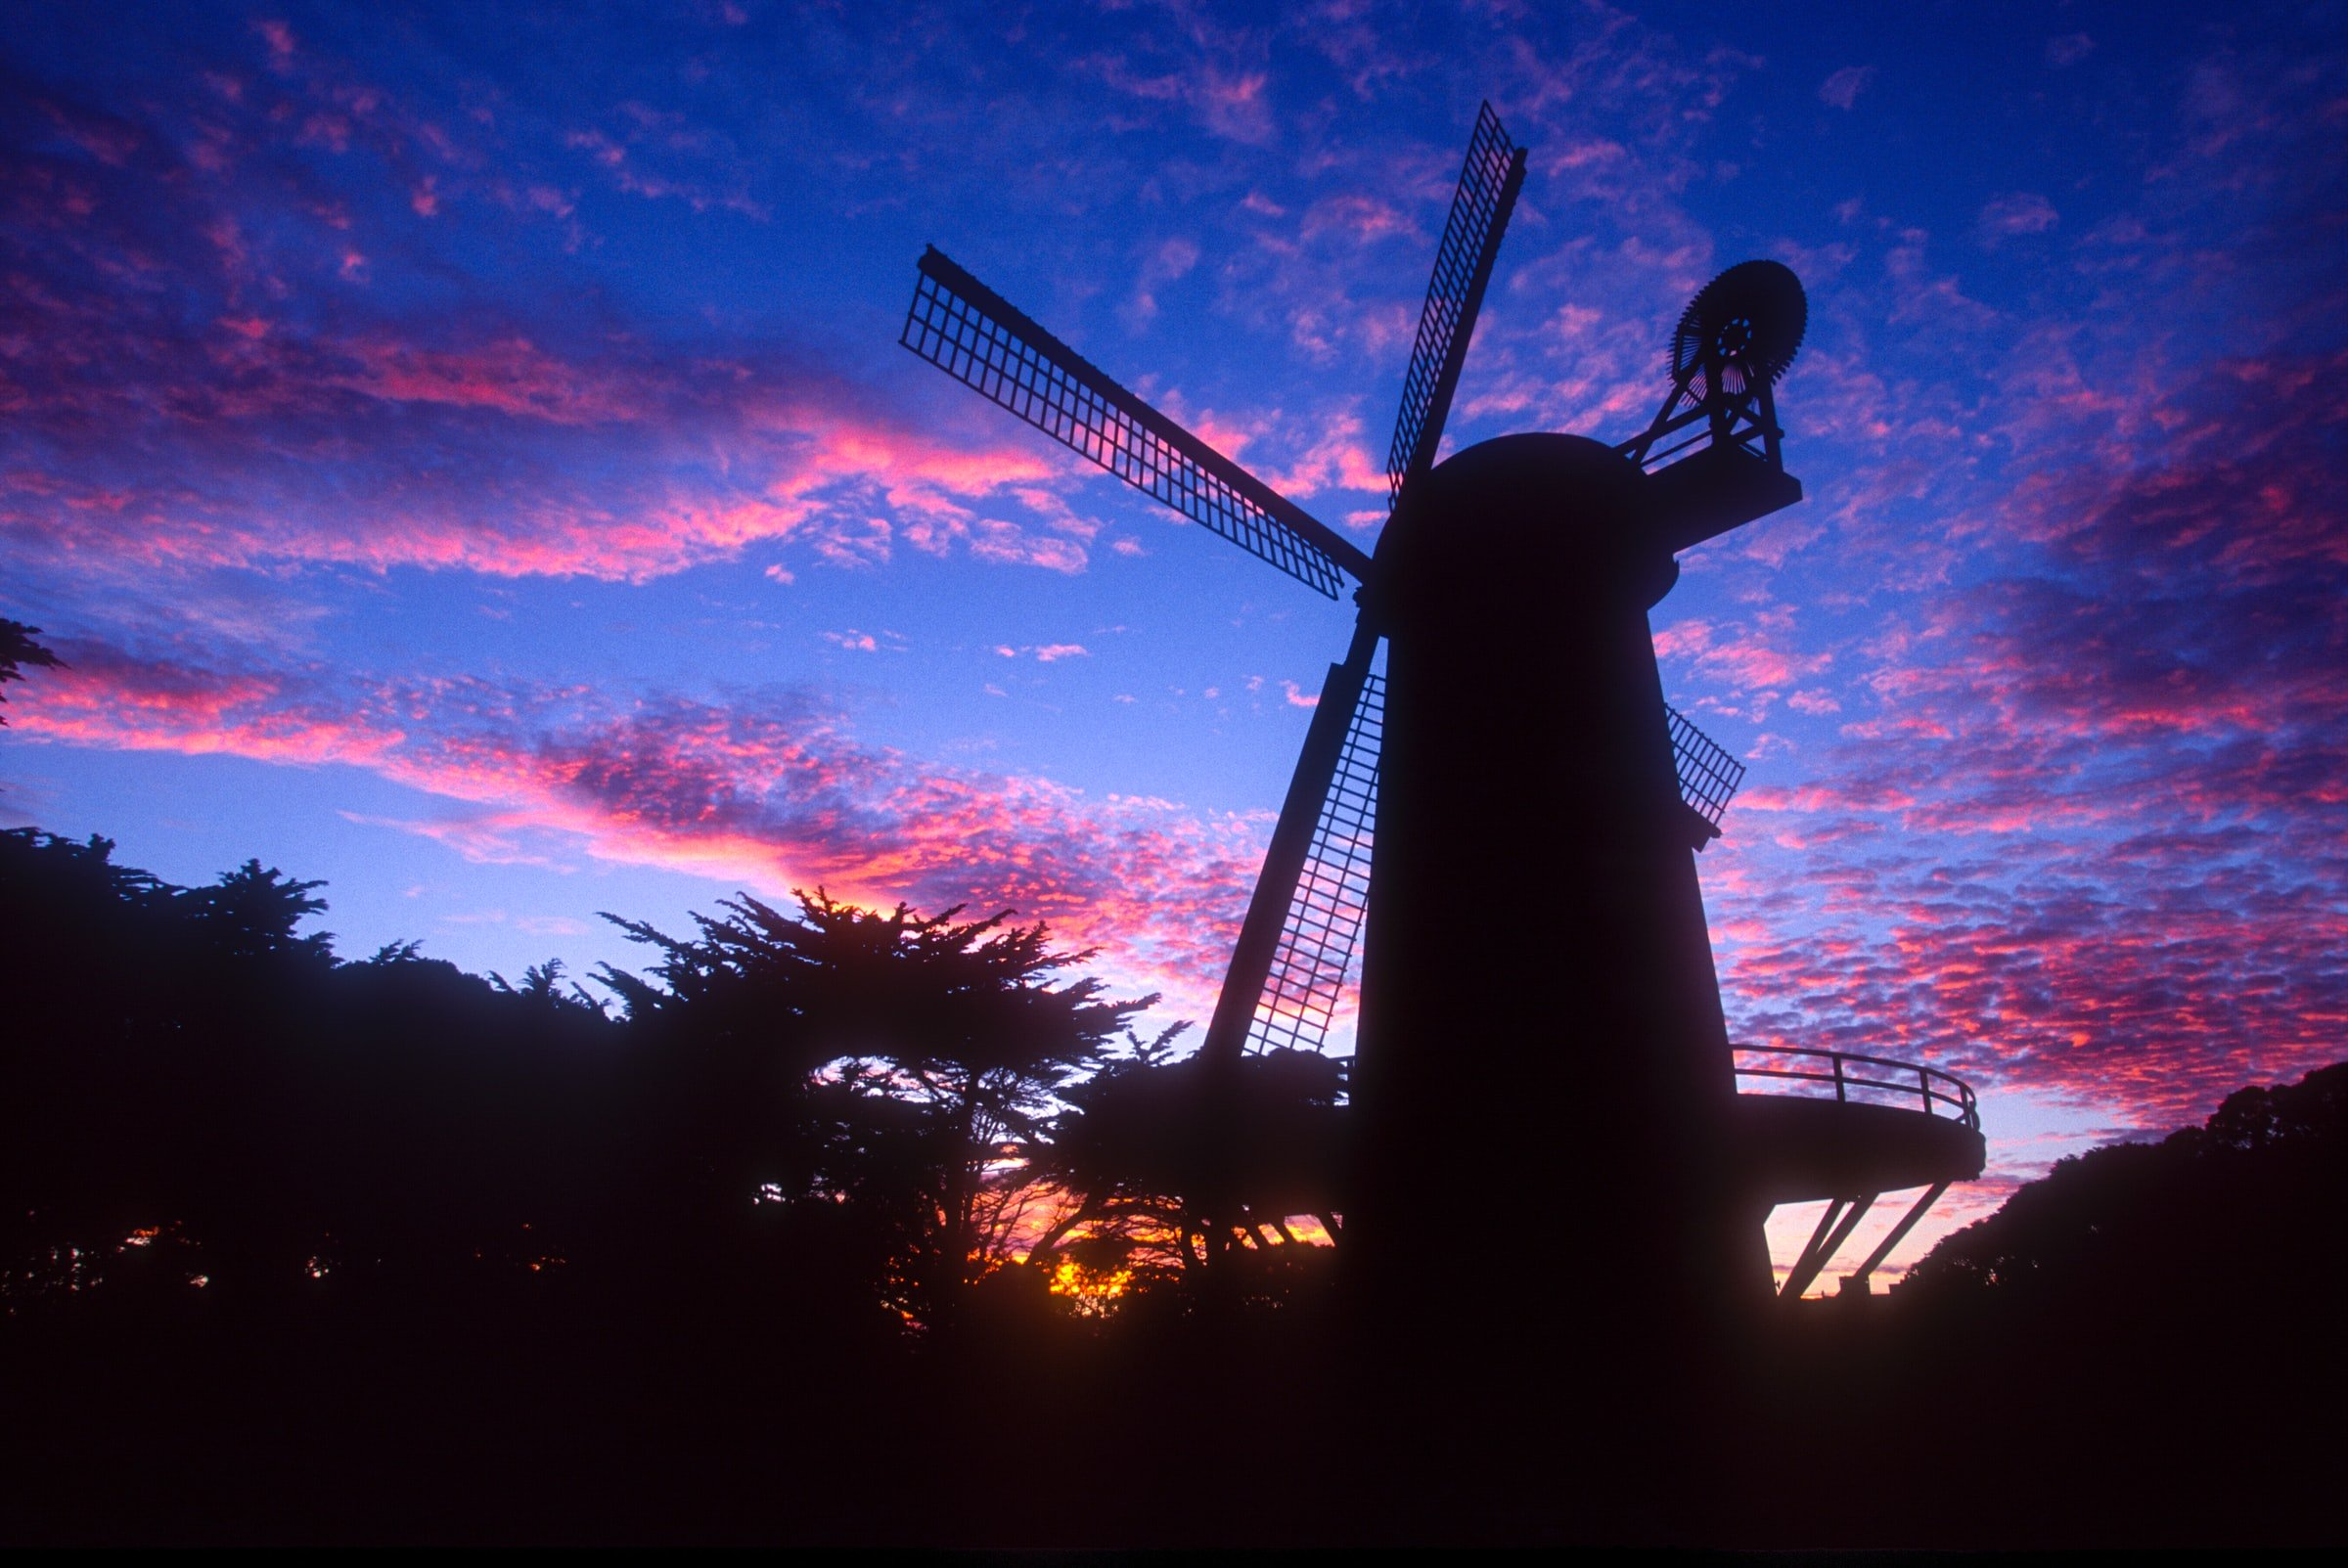 Dutch Windmill at sunset in Golden Gate Park